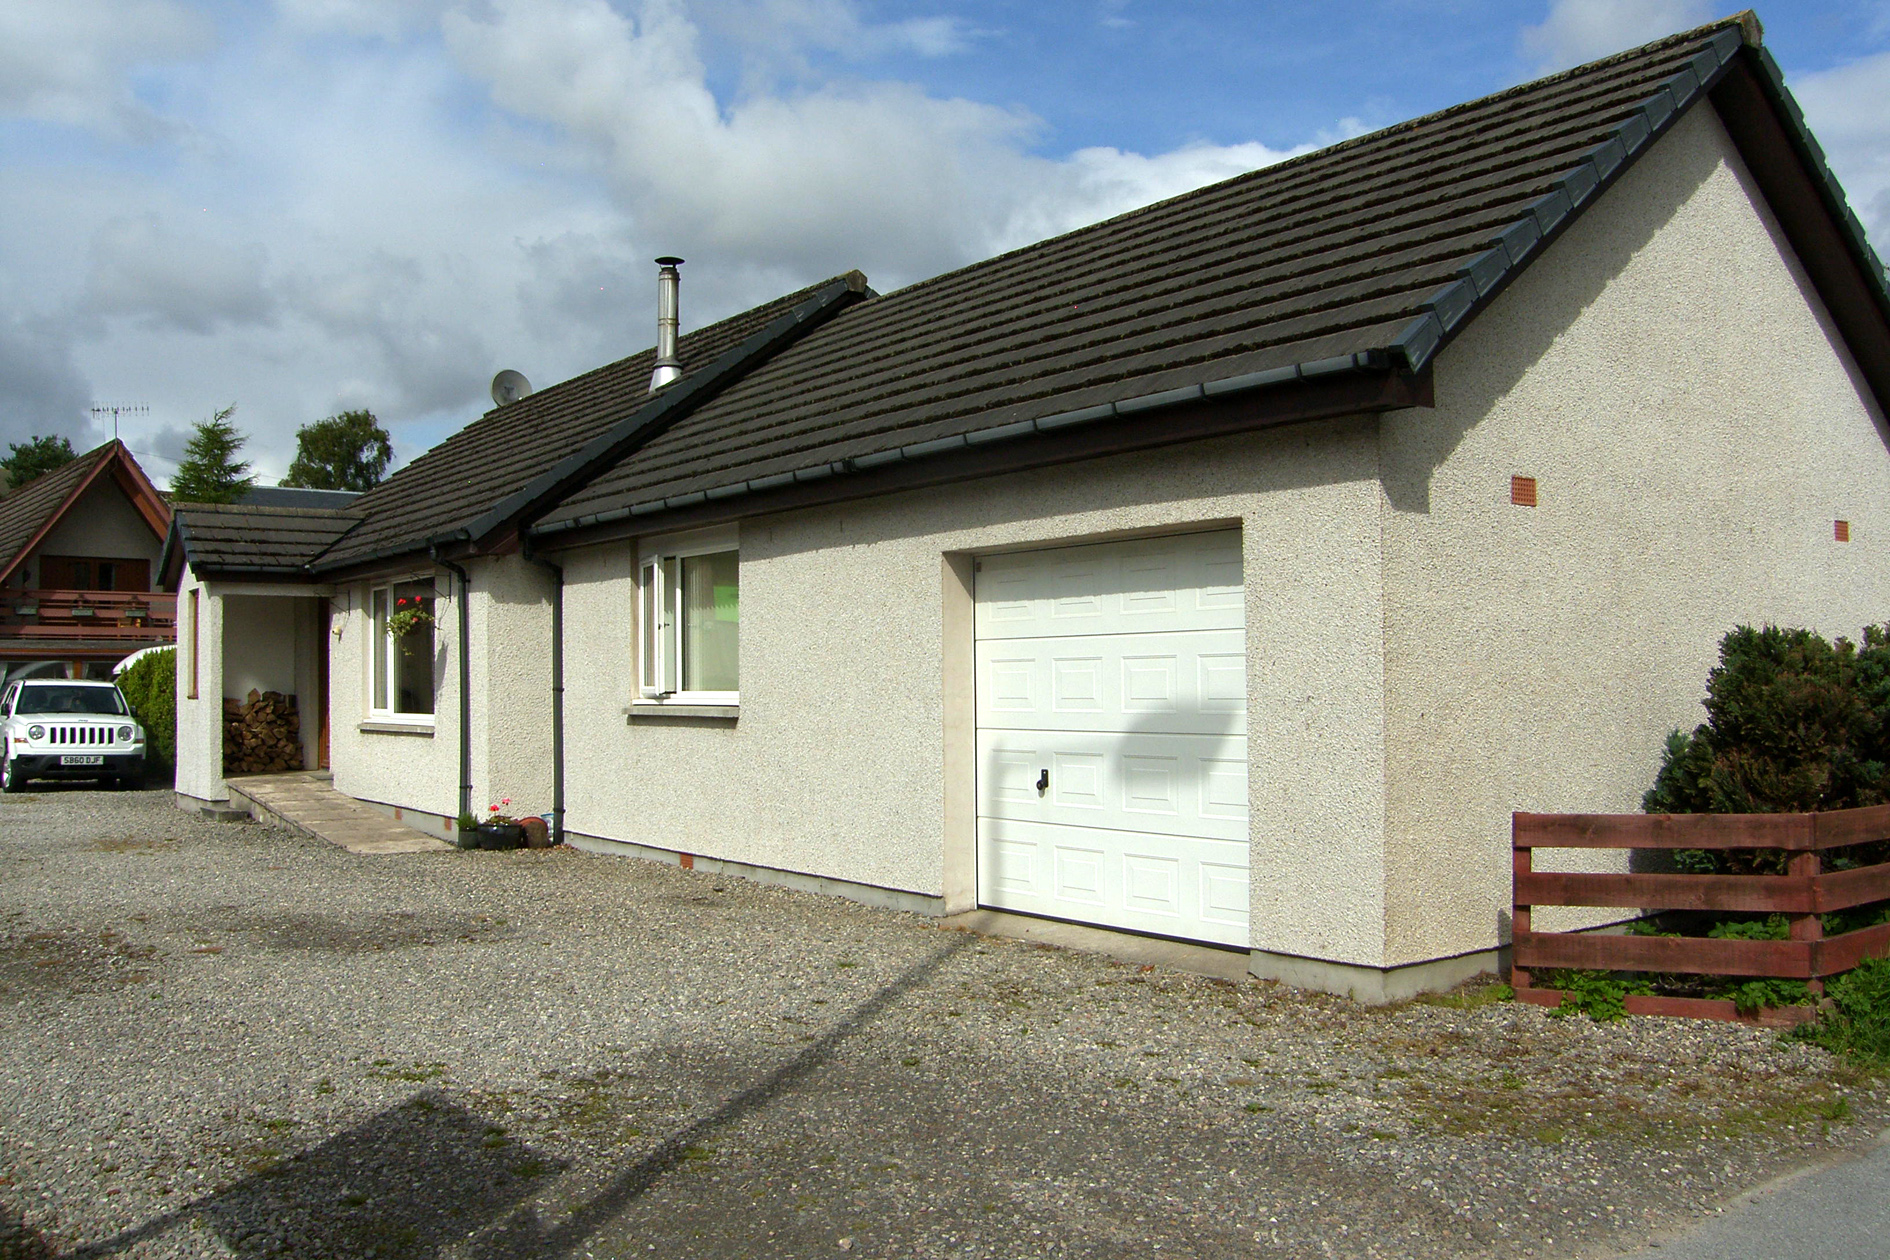 3 Bedrooms Detached House for sale in Main Street, Newtonmore, PH20 1DR